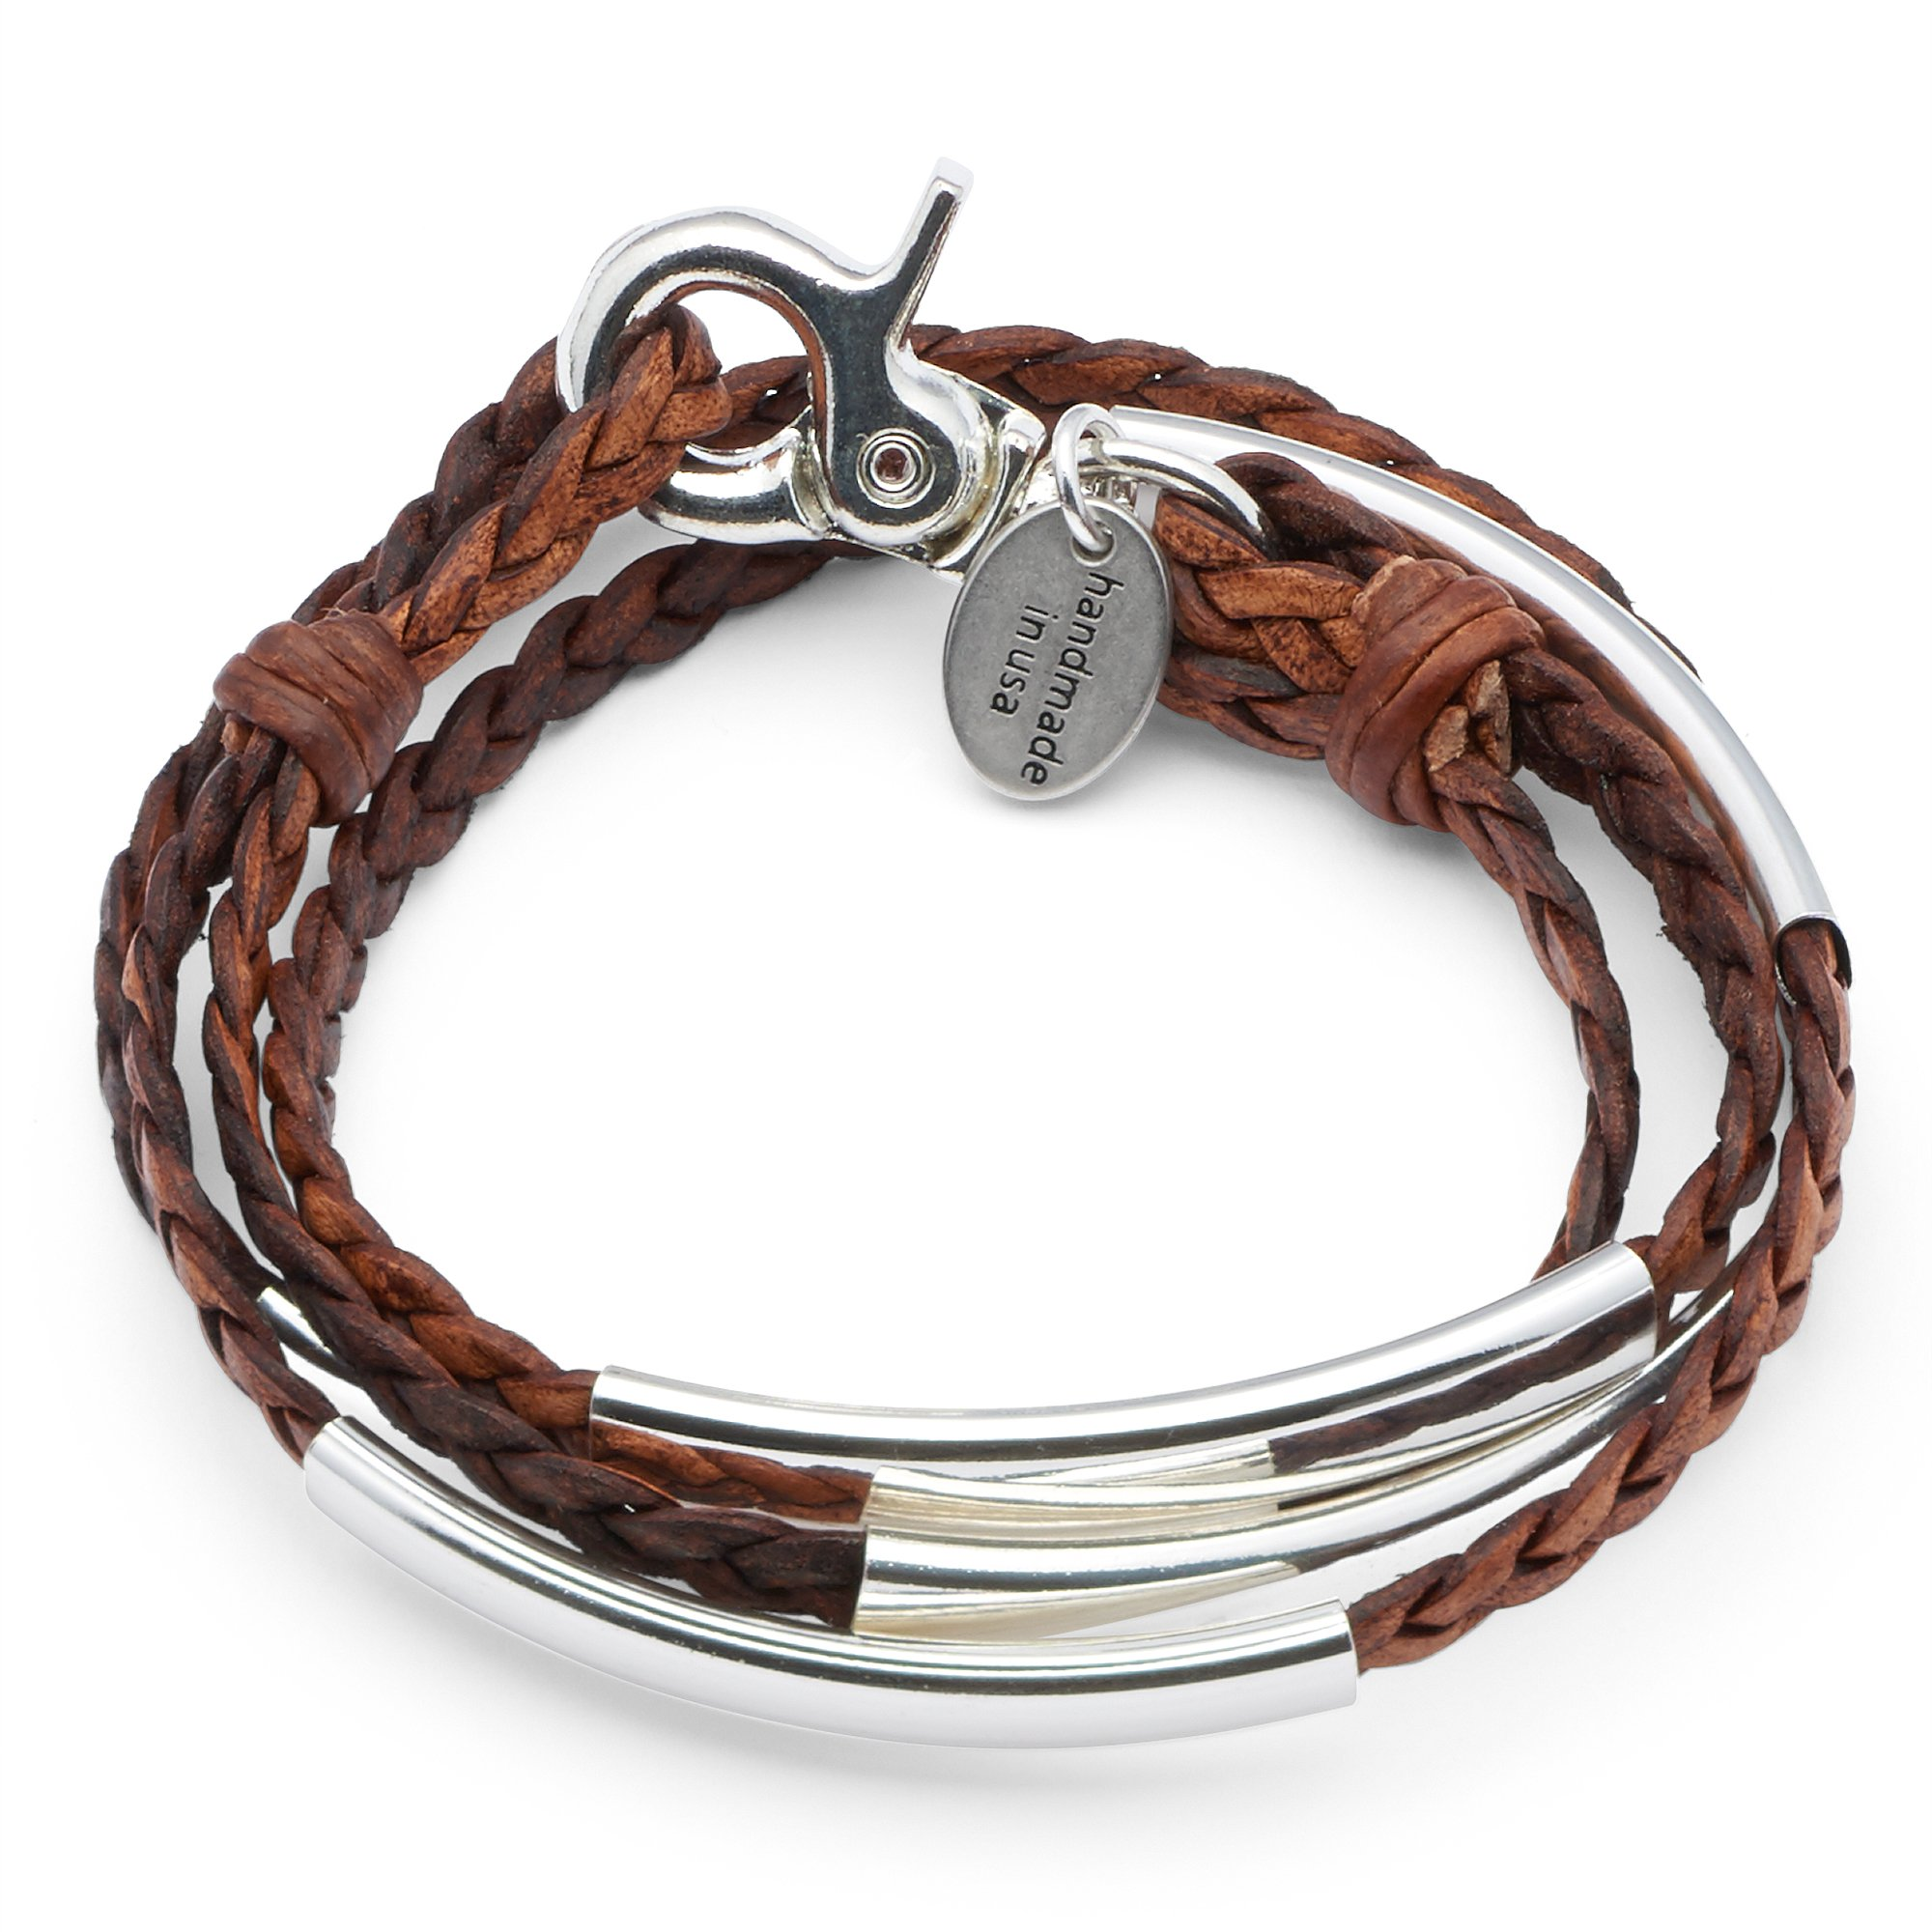 Mini Addison Braided Leather Wrap Bracelet with Silverplate Crescents in Natural Antique Brown Leather (Petite)